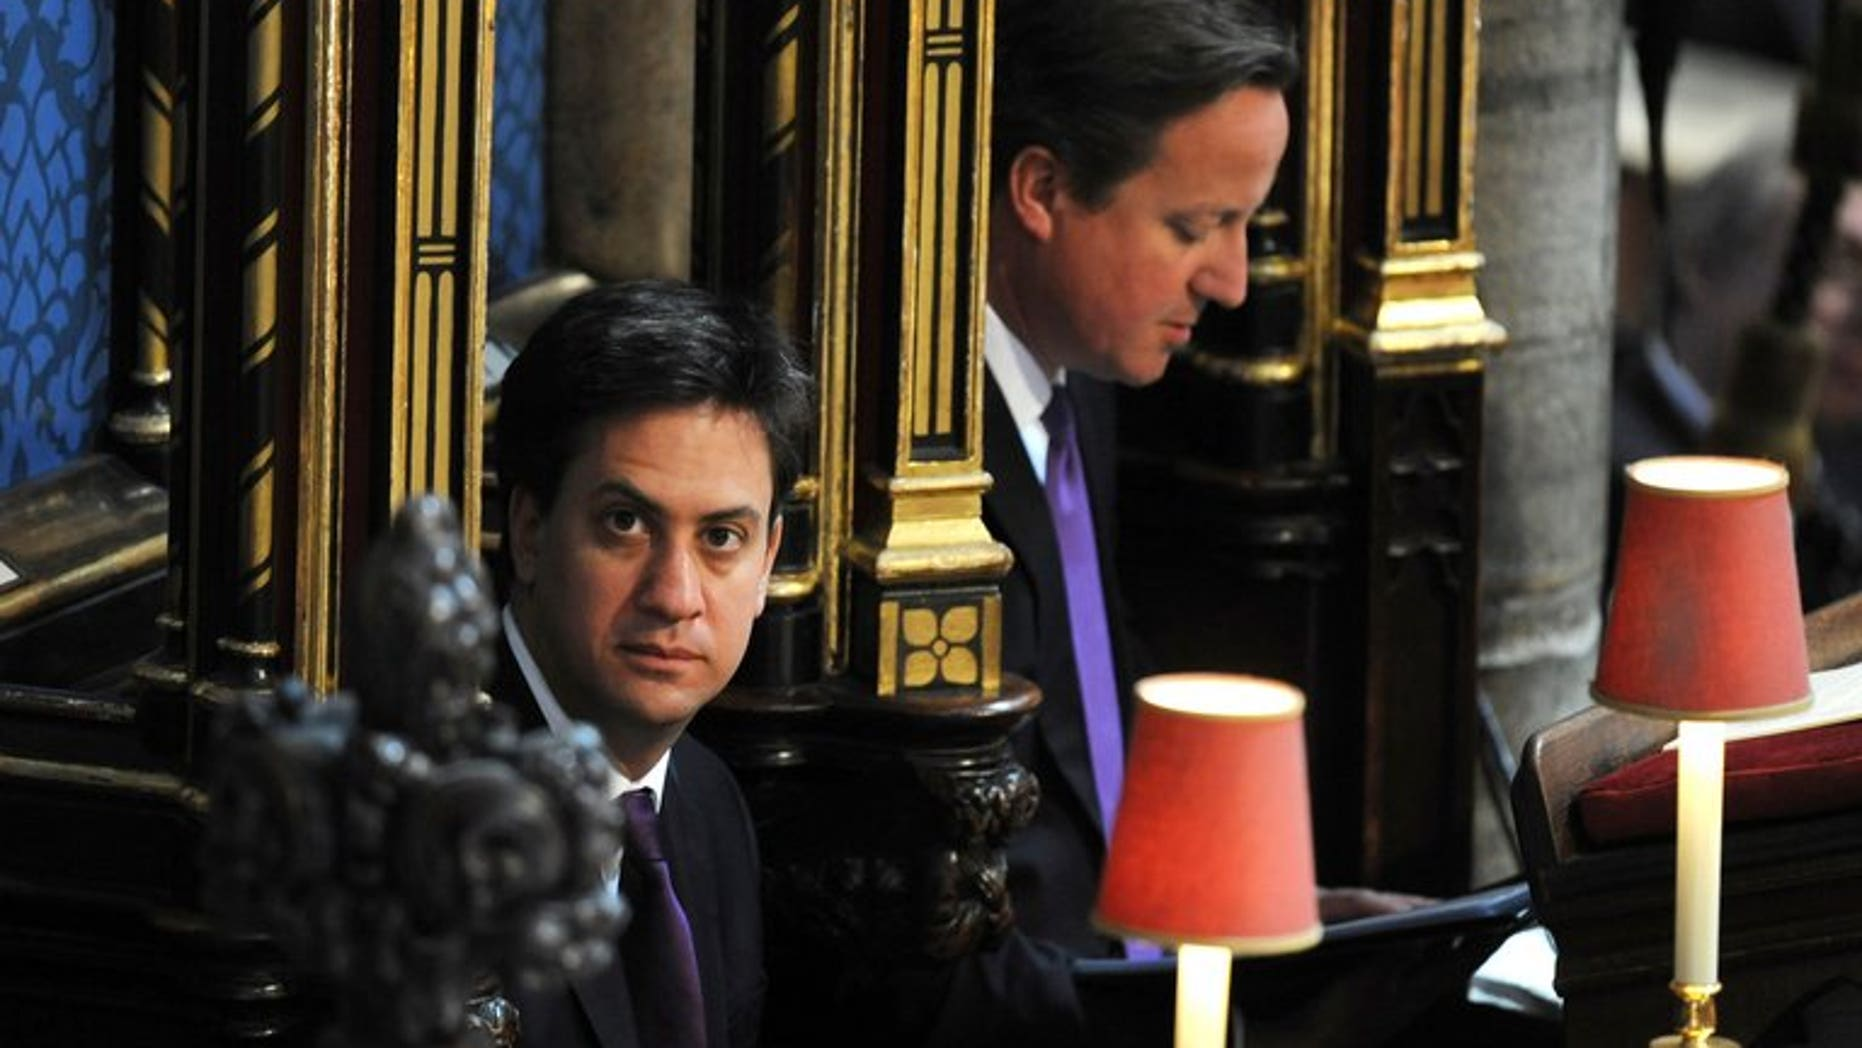 Prime Minister David Cameron (R) and Labour leader, Ed Miliband, are shown at Westminster Abbey in London on June 4, 2013. Miliband was delivered a further blow on Tuesday when a new poll showed that faith in the Conservative's handling of the economy had soared.